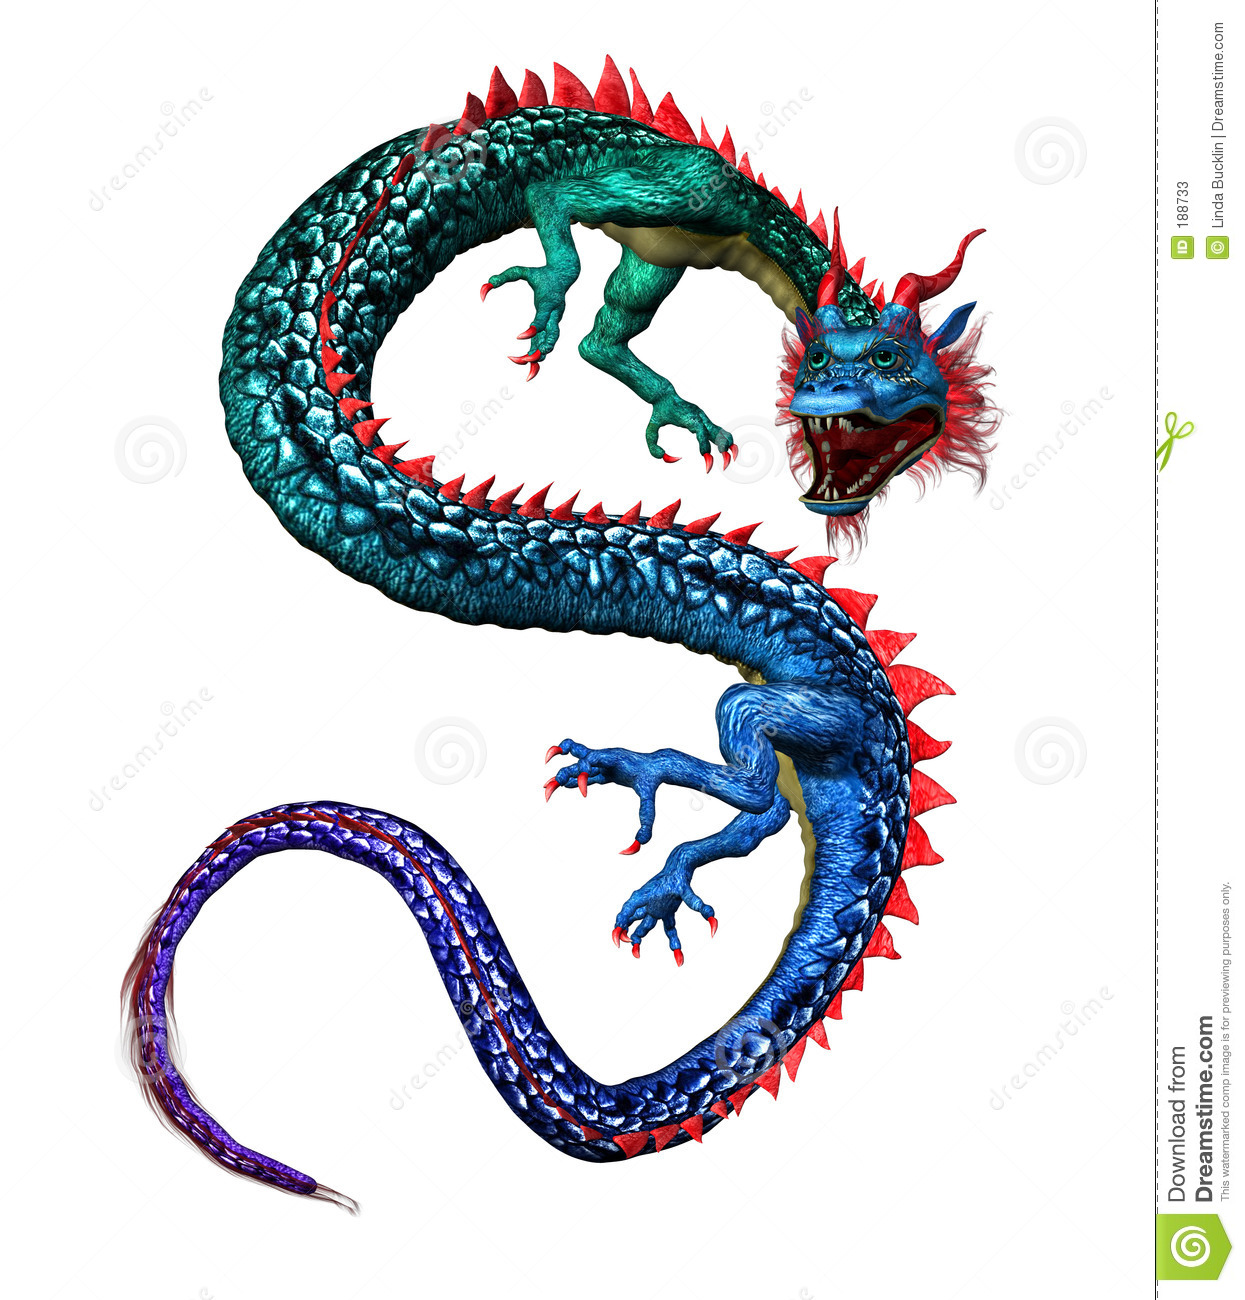 colorful oriental dragon   includes clipping path stock